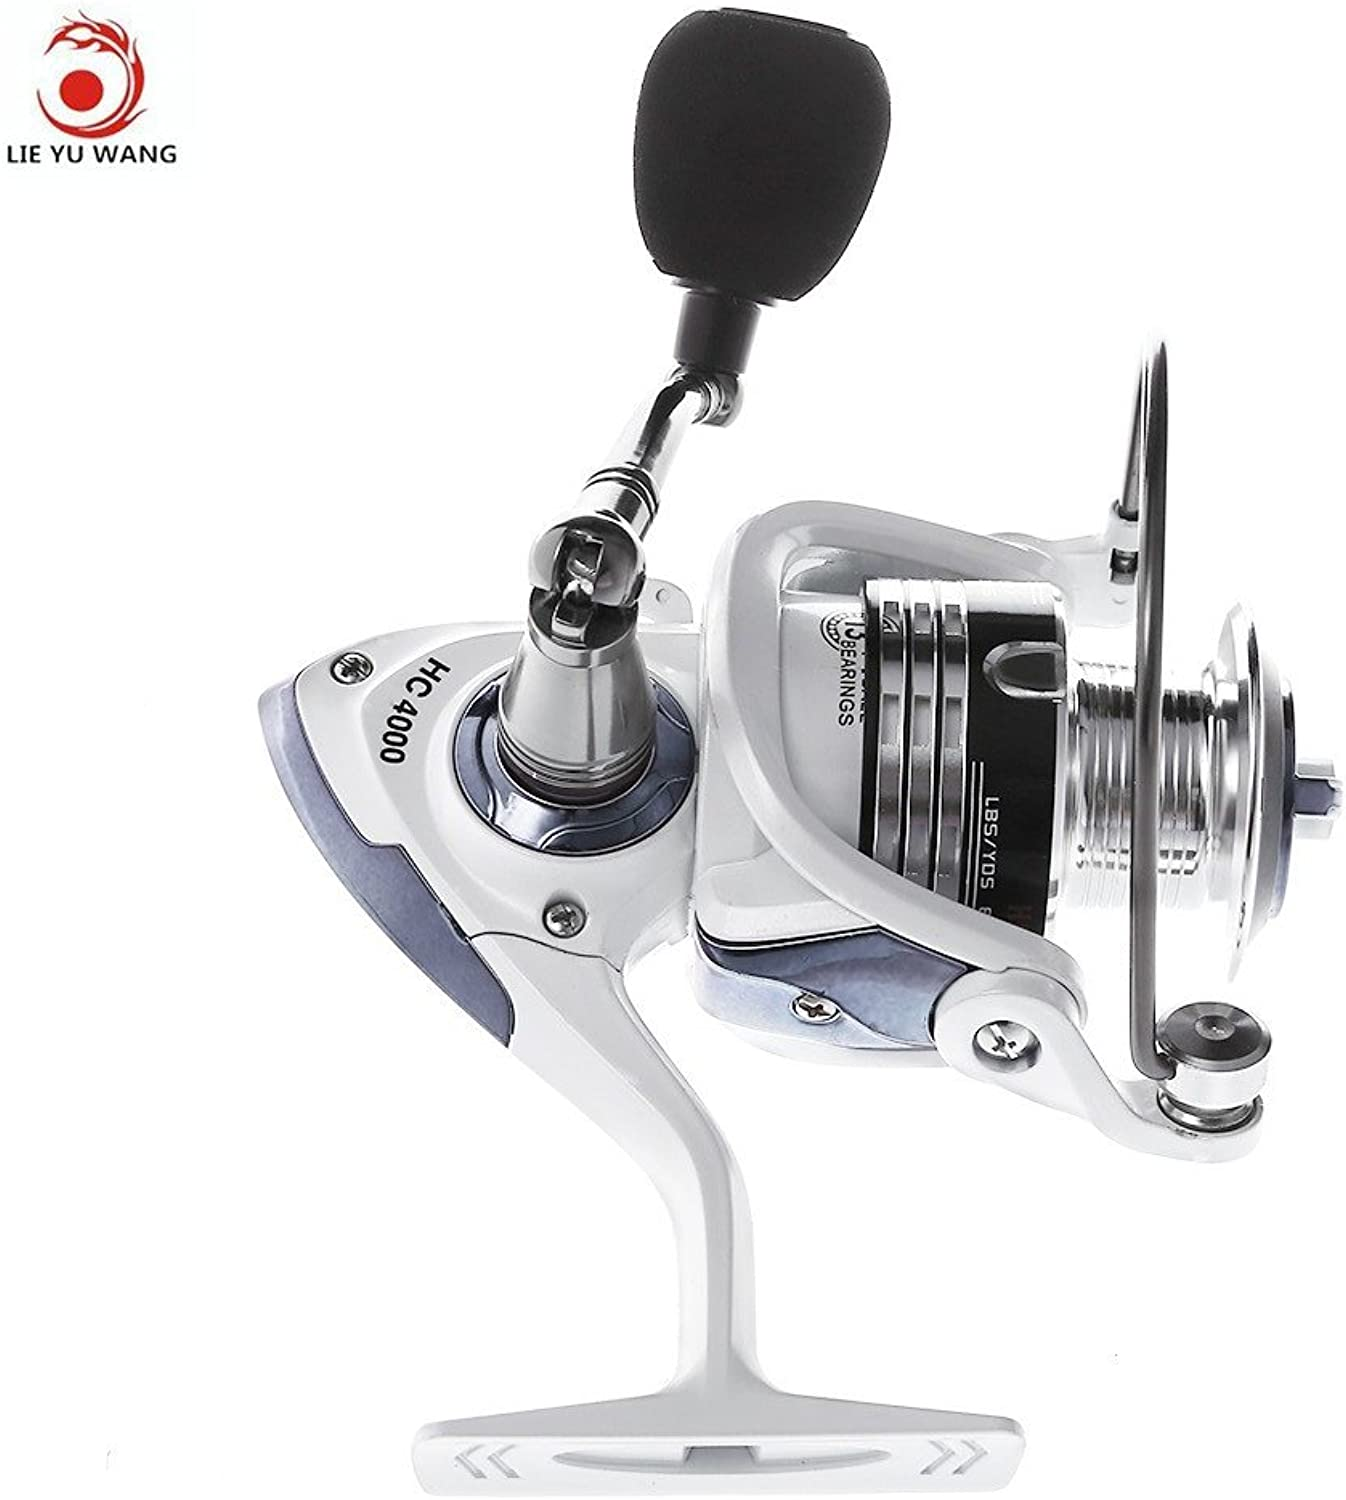 Spinning Reel, White 13 Ball Bearing Oneway Clutch Saltwater Fish Reel, Hc4000